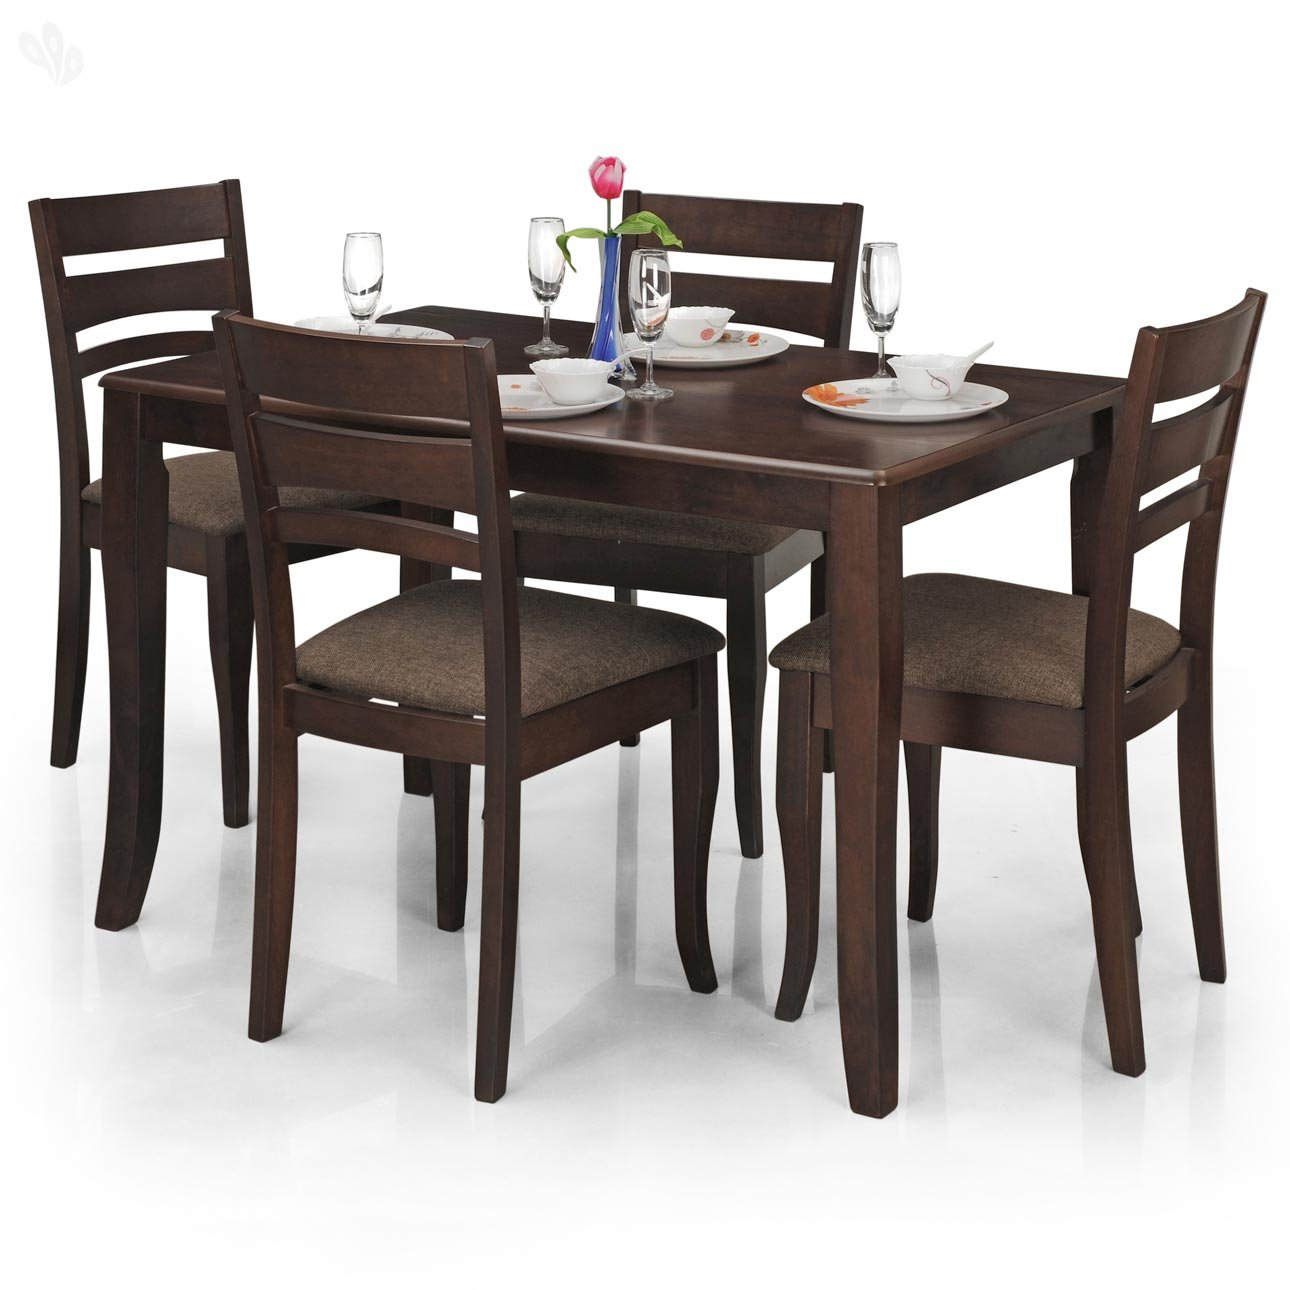 Tables and chairs price list for Dining room table for 4